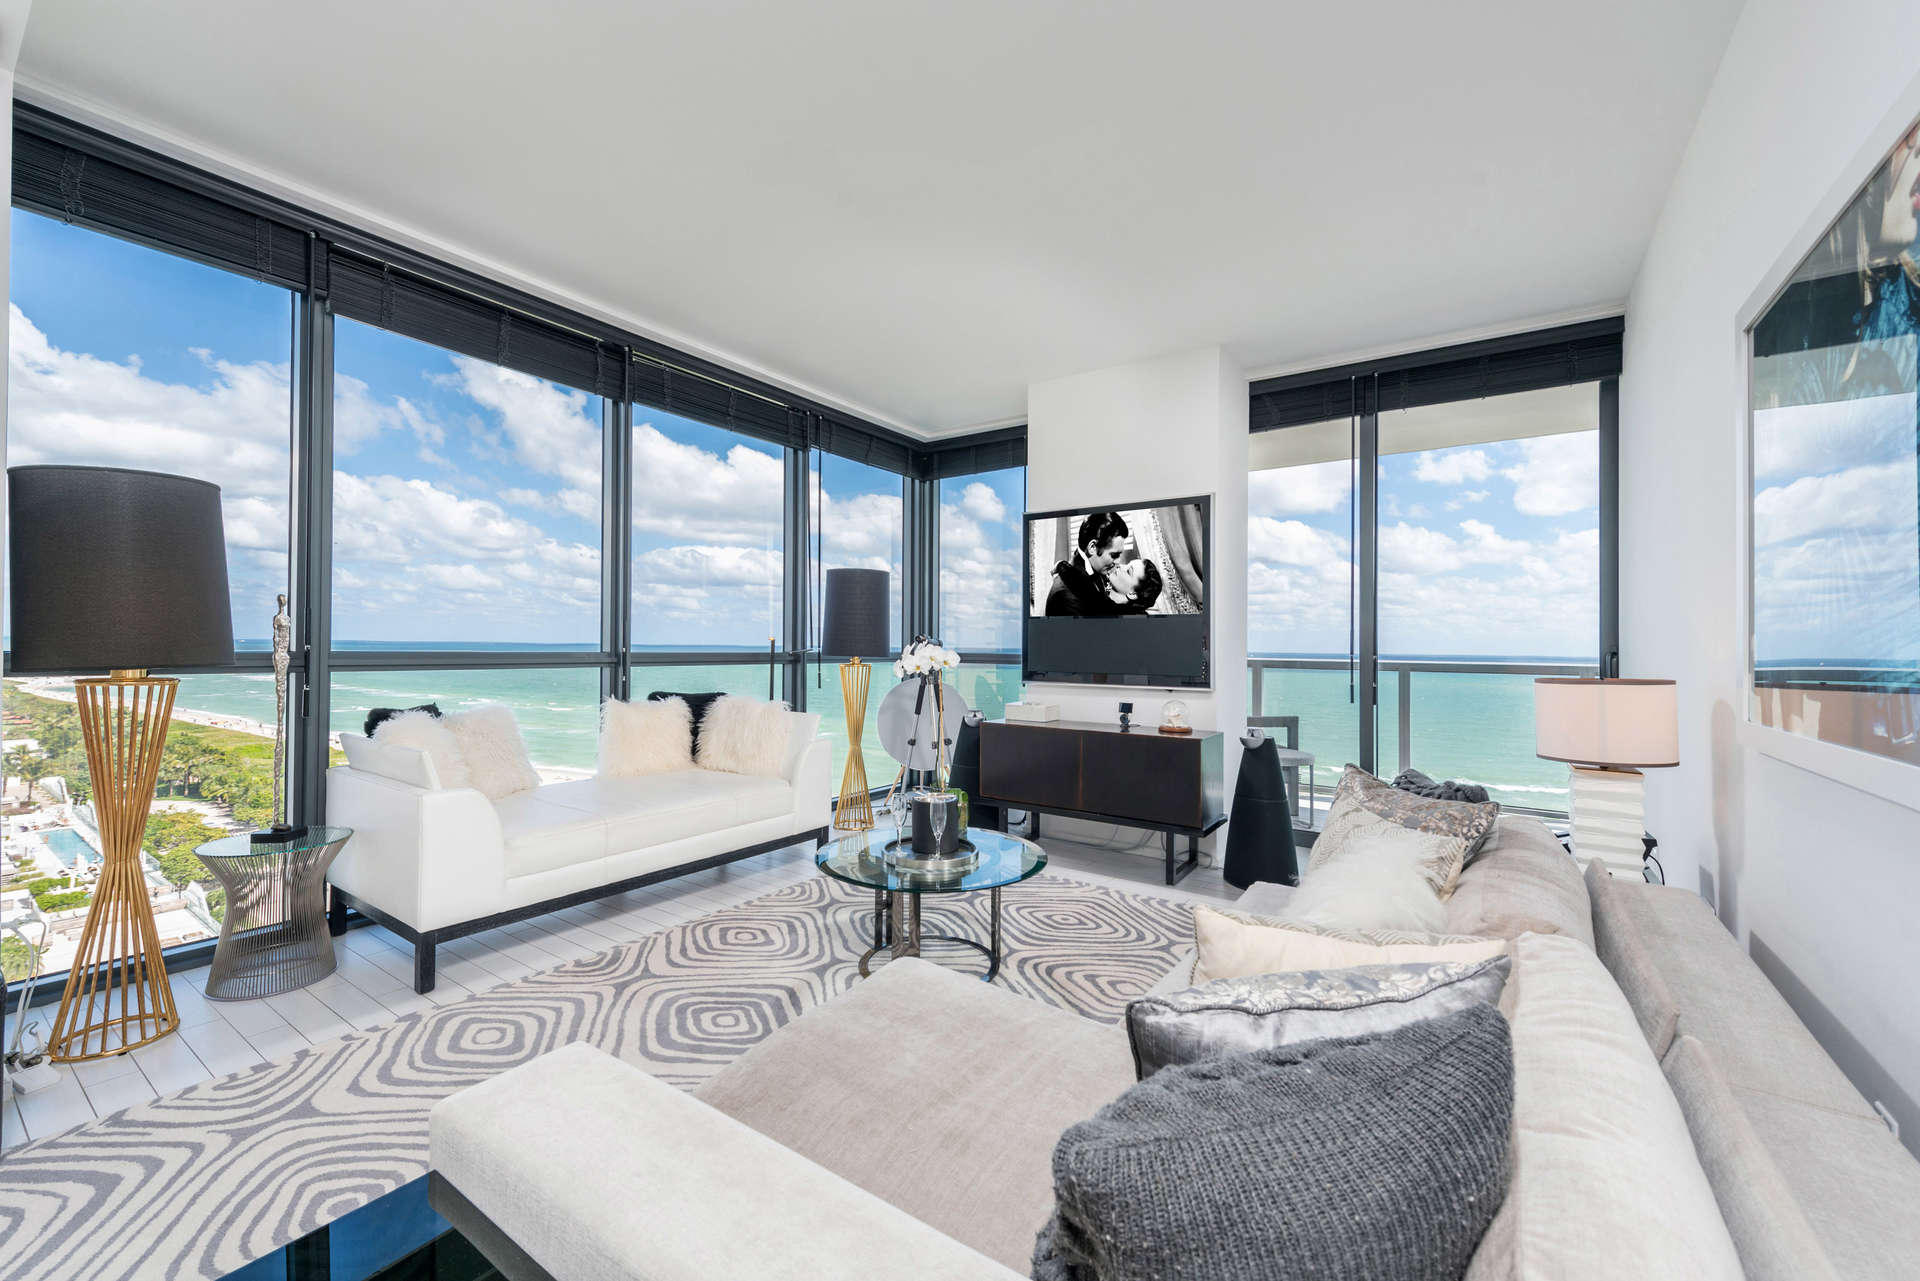 Luxury vacation rentals usa - Florida - Miami beach - W hotel south beach - 3 BDM Private Oceanfront - Image 1/18